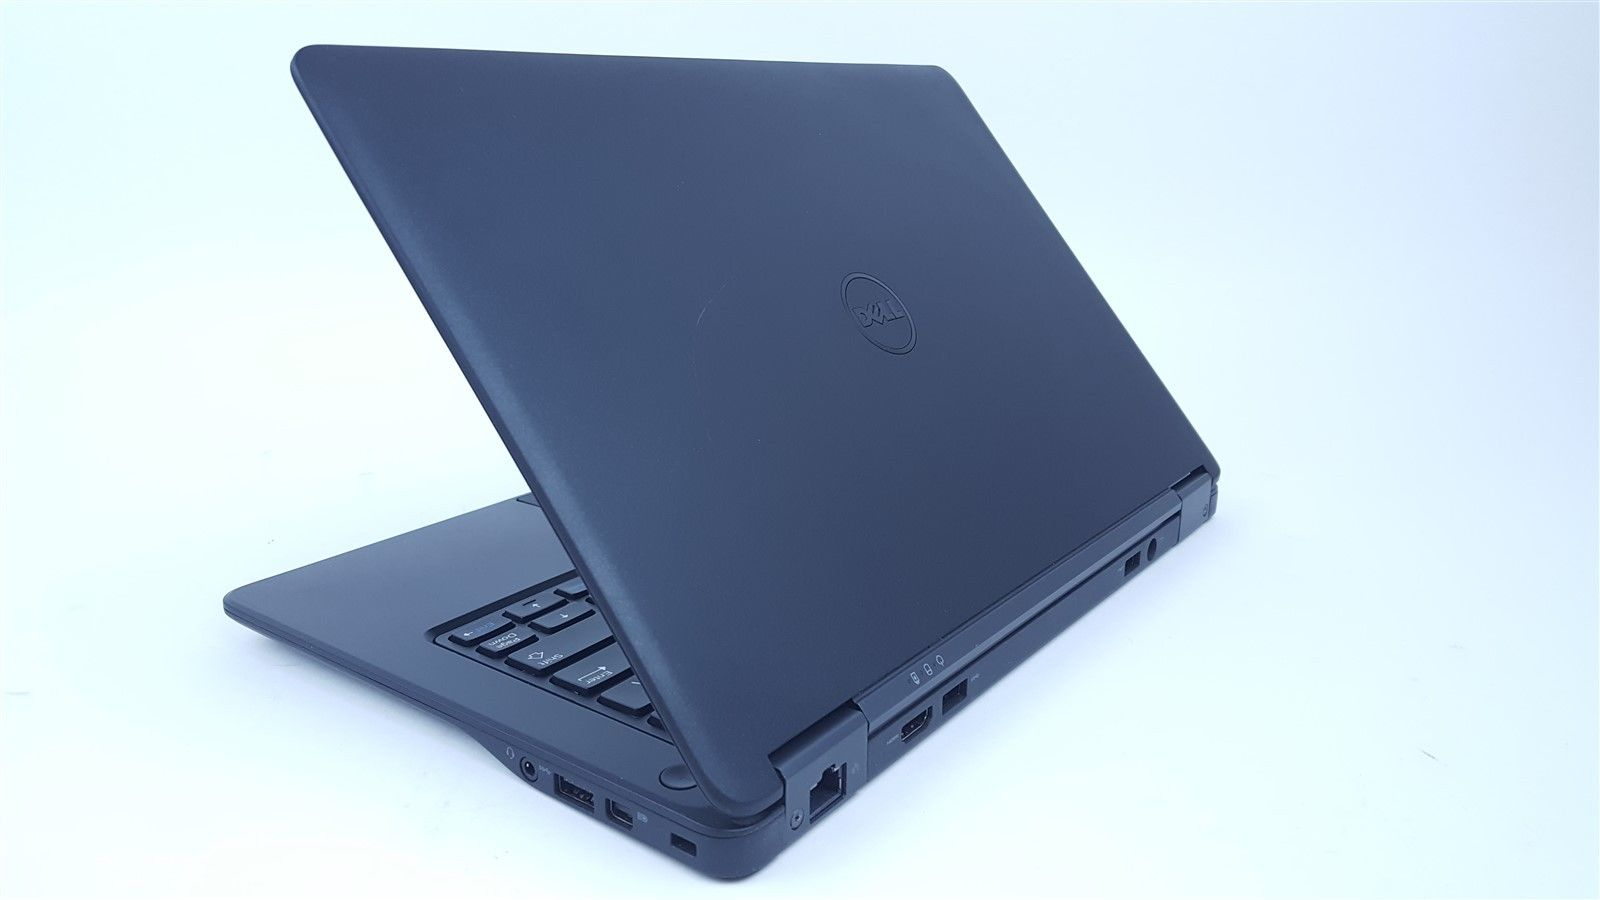 "Dell Latitude E7250 12.5"" I7-5600U 16Gb Ram 256Gb SSD Webcam Win 10 Pro Laptop"